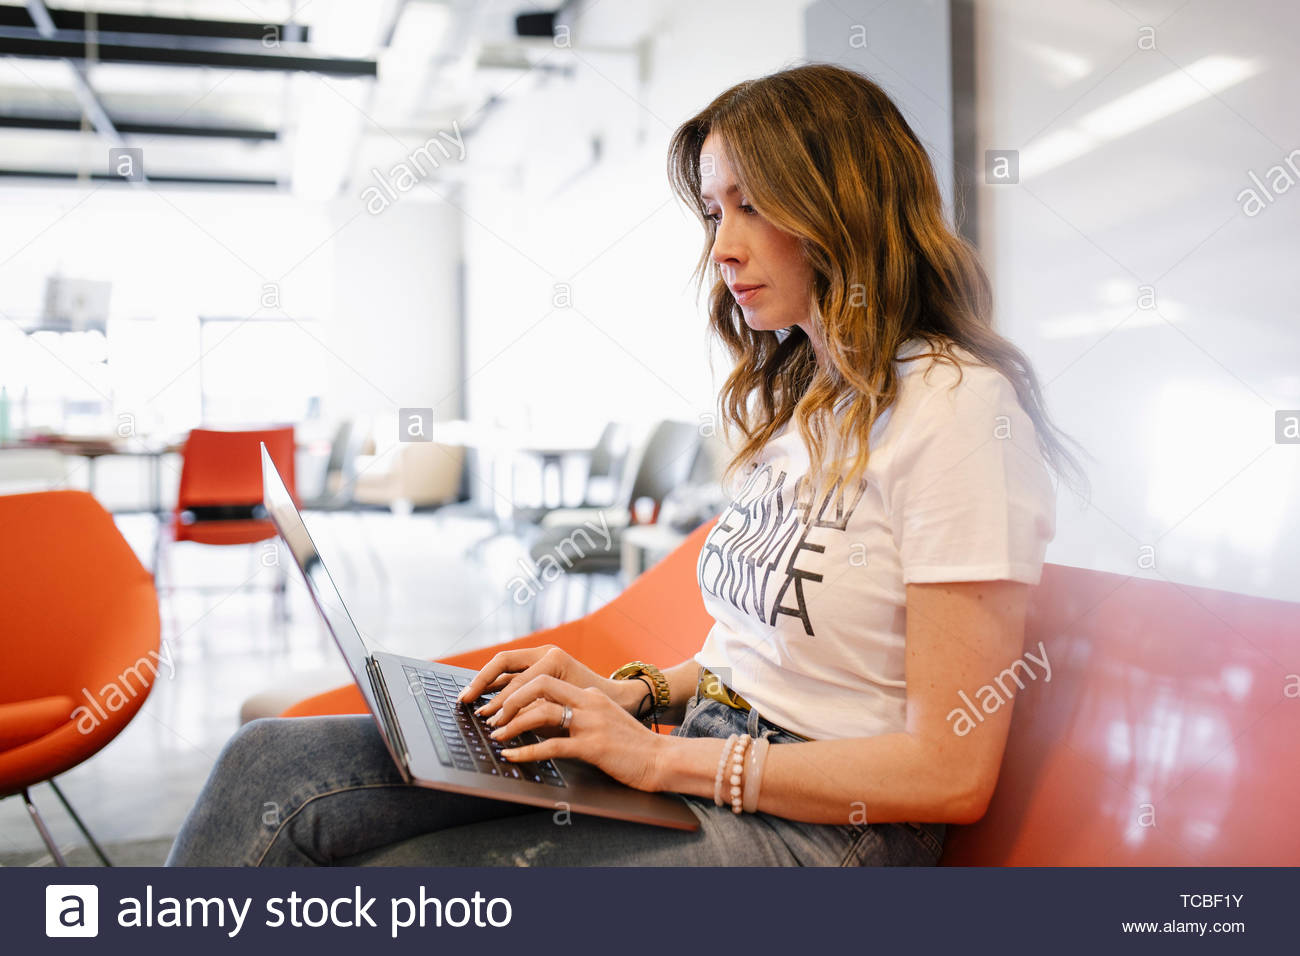 Businesswoman using laptop in coworking space - Stock Image